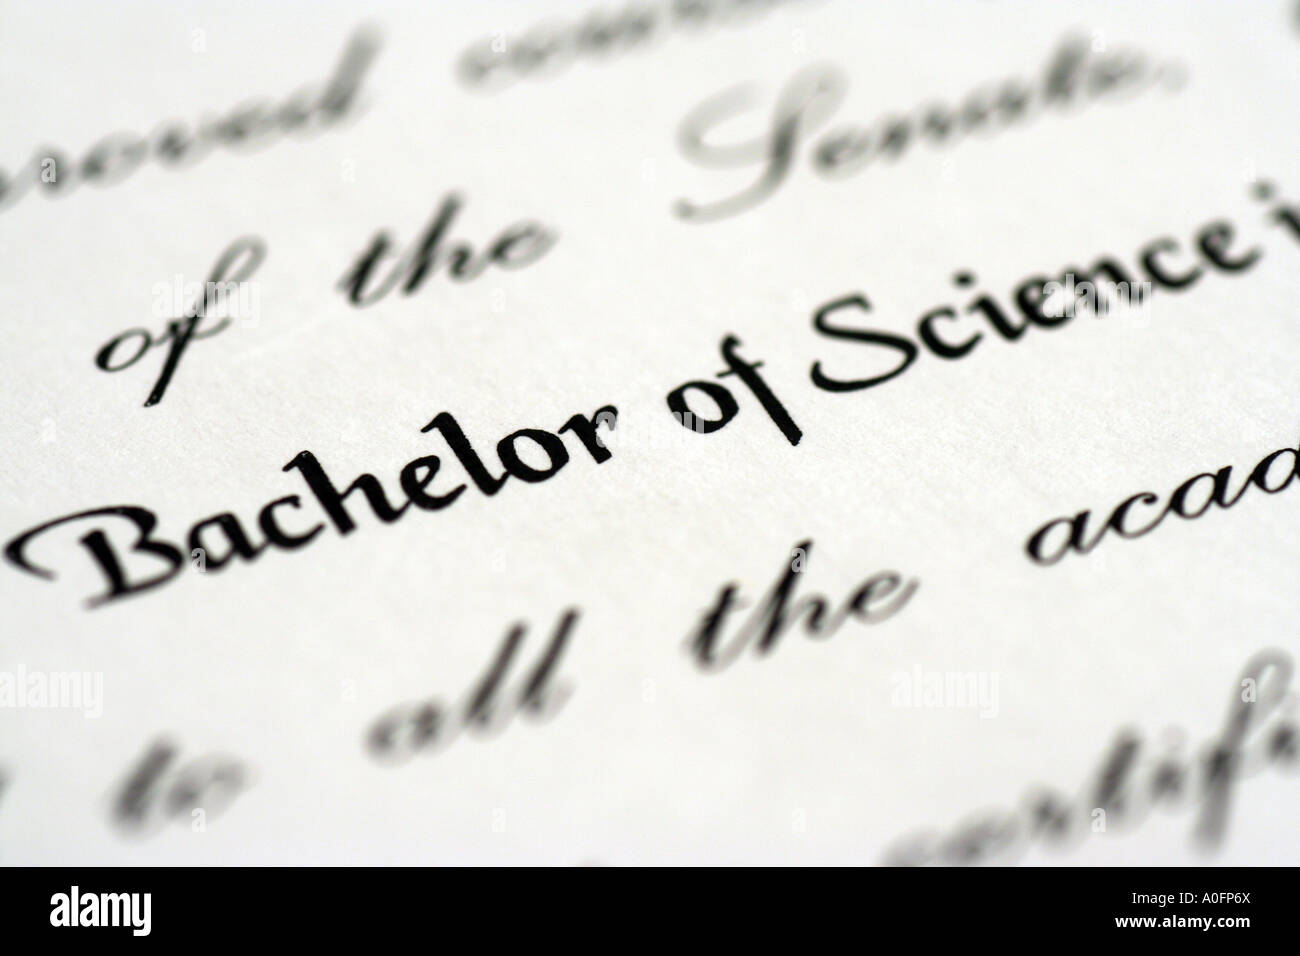 University Degree Certificate. Bachelor Of Science Stock Photo ...